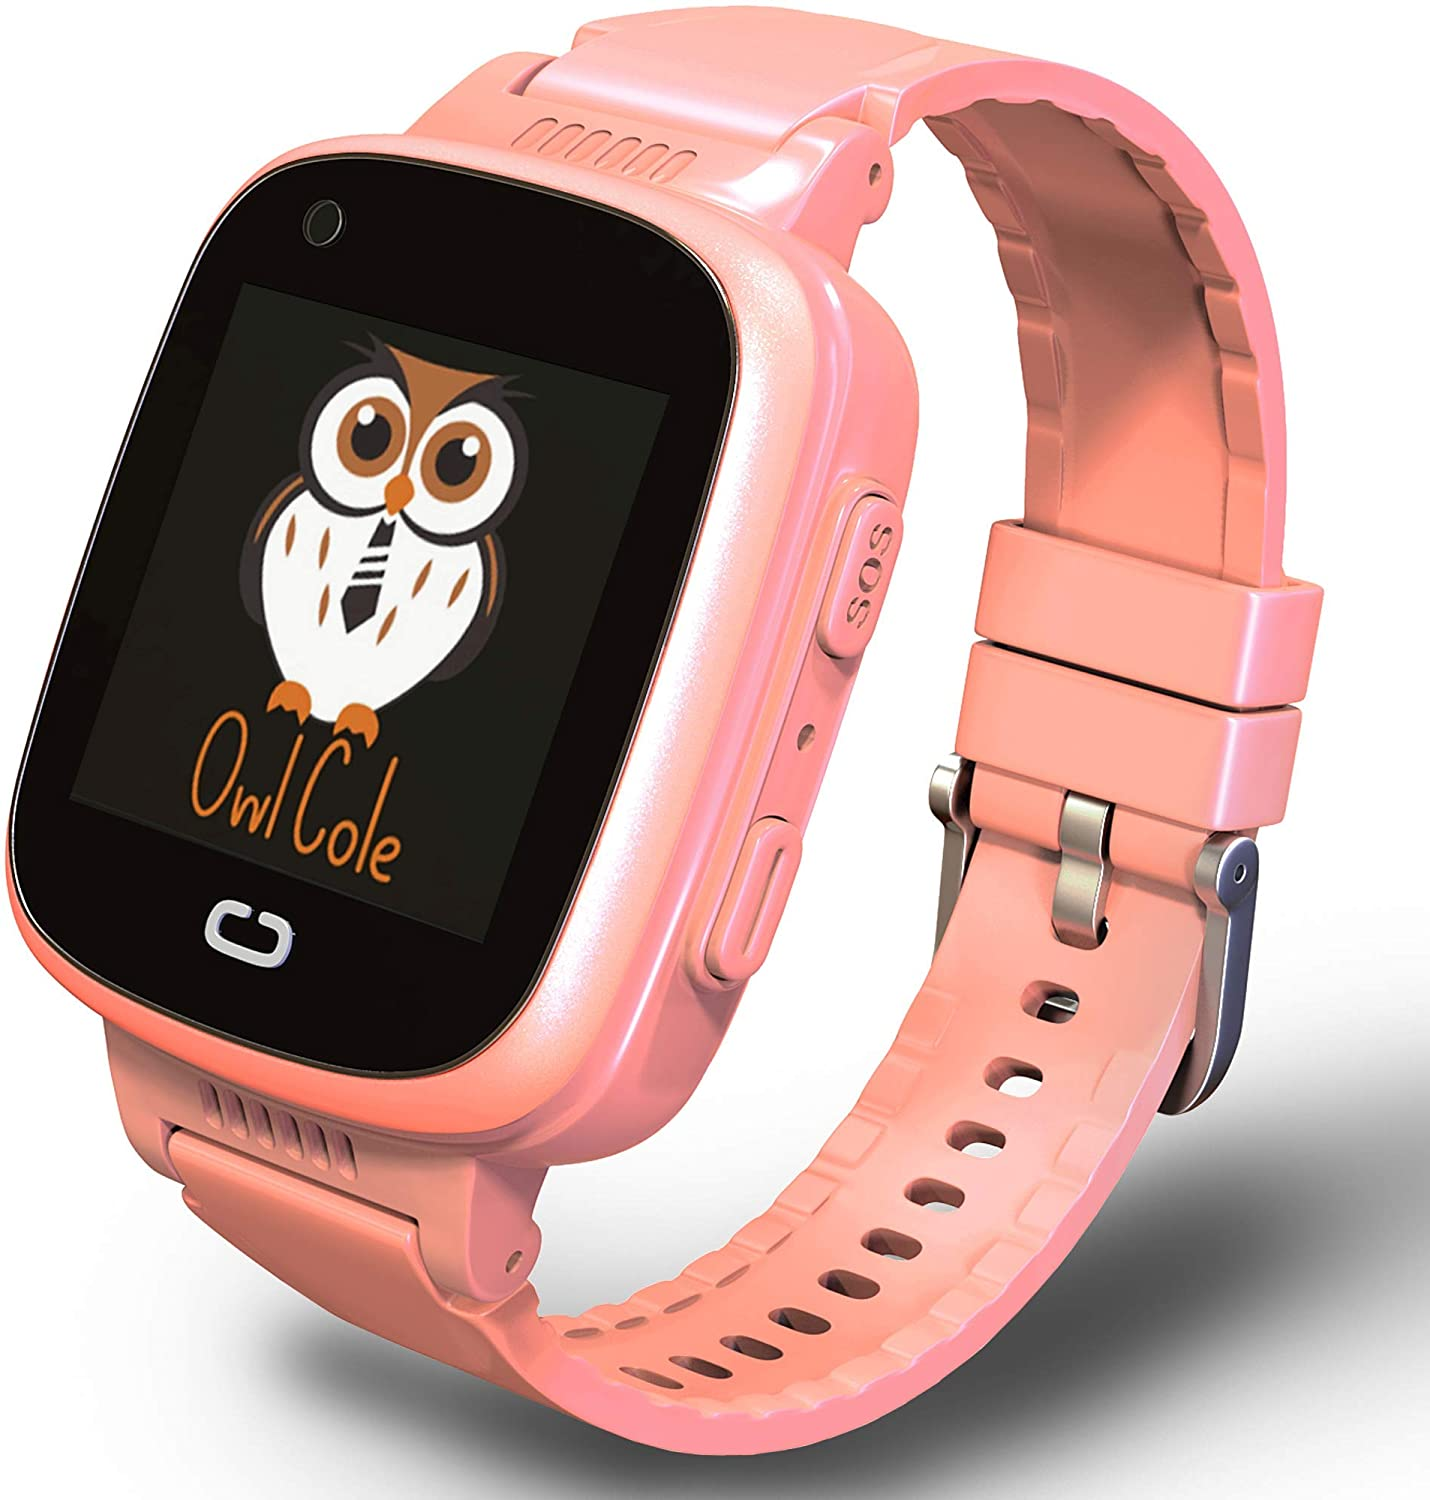 owl cole smartwatch for kids isolated on white background